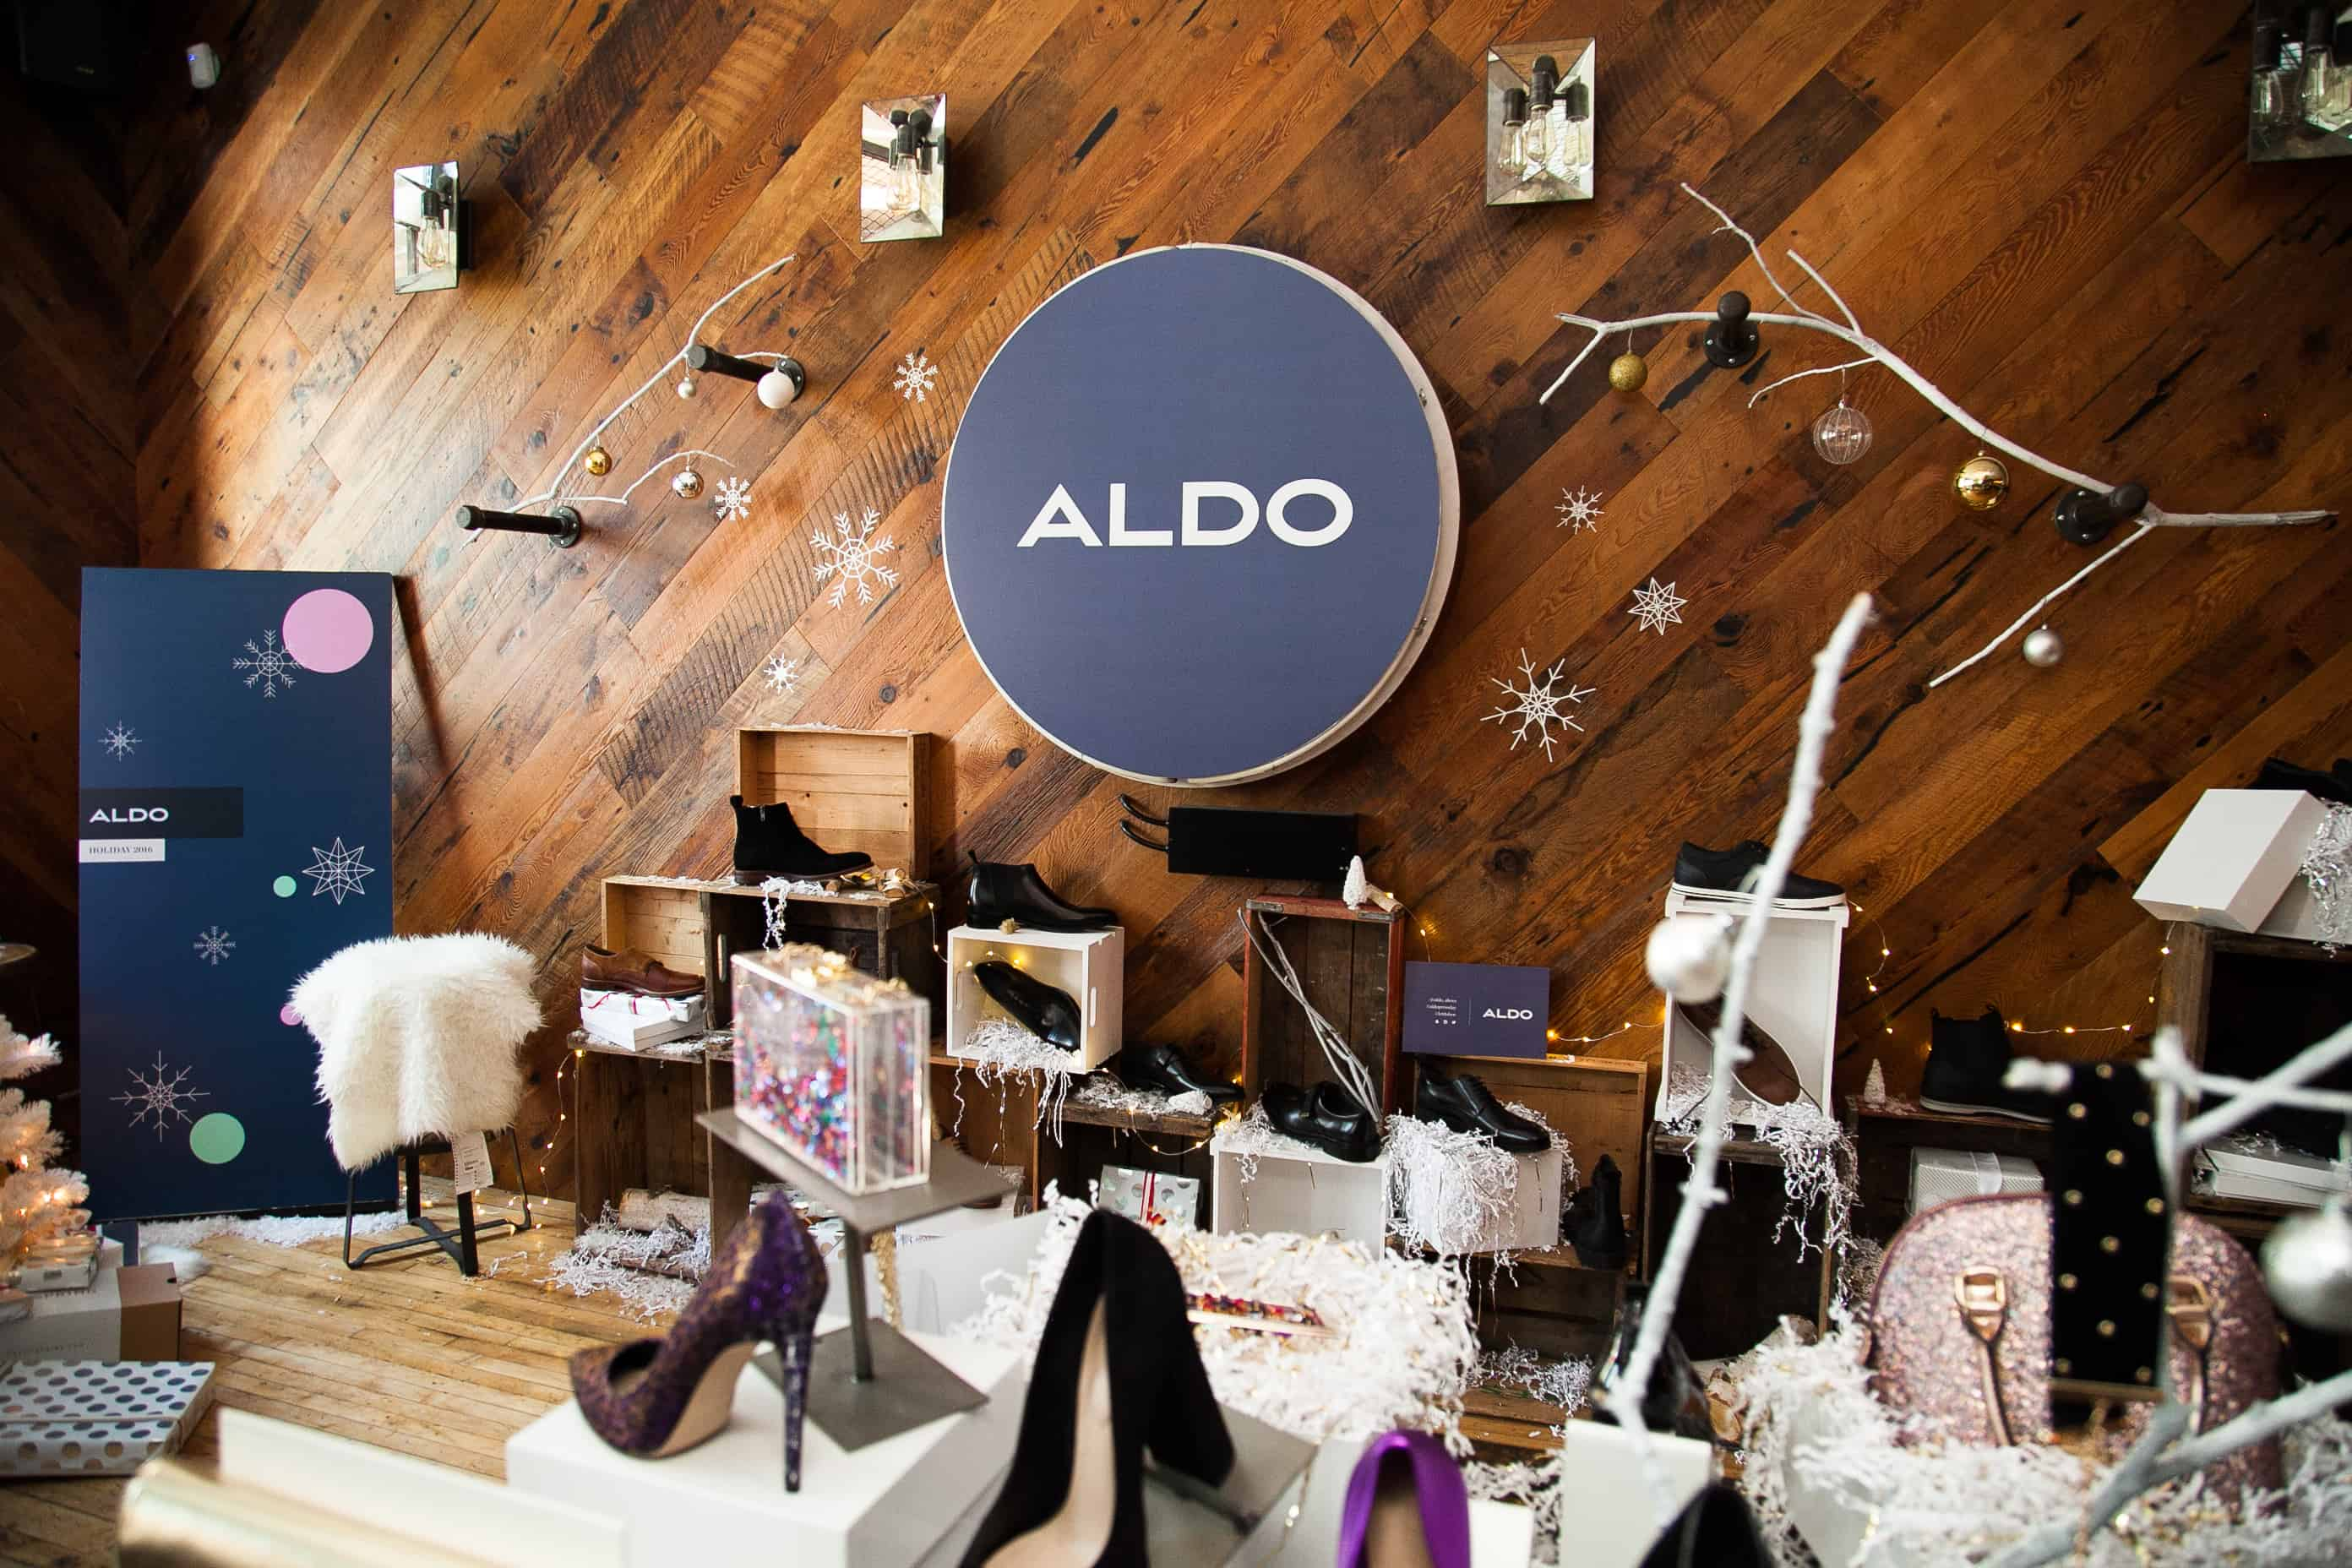 Aldo's New Collections Have Us Gearing Up For Fall